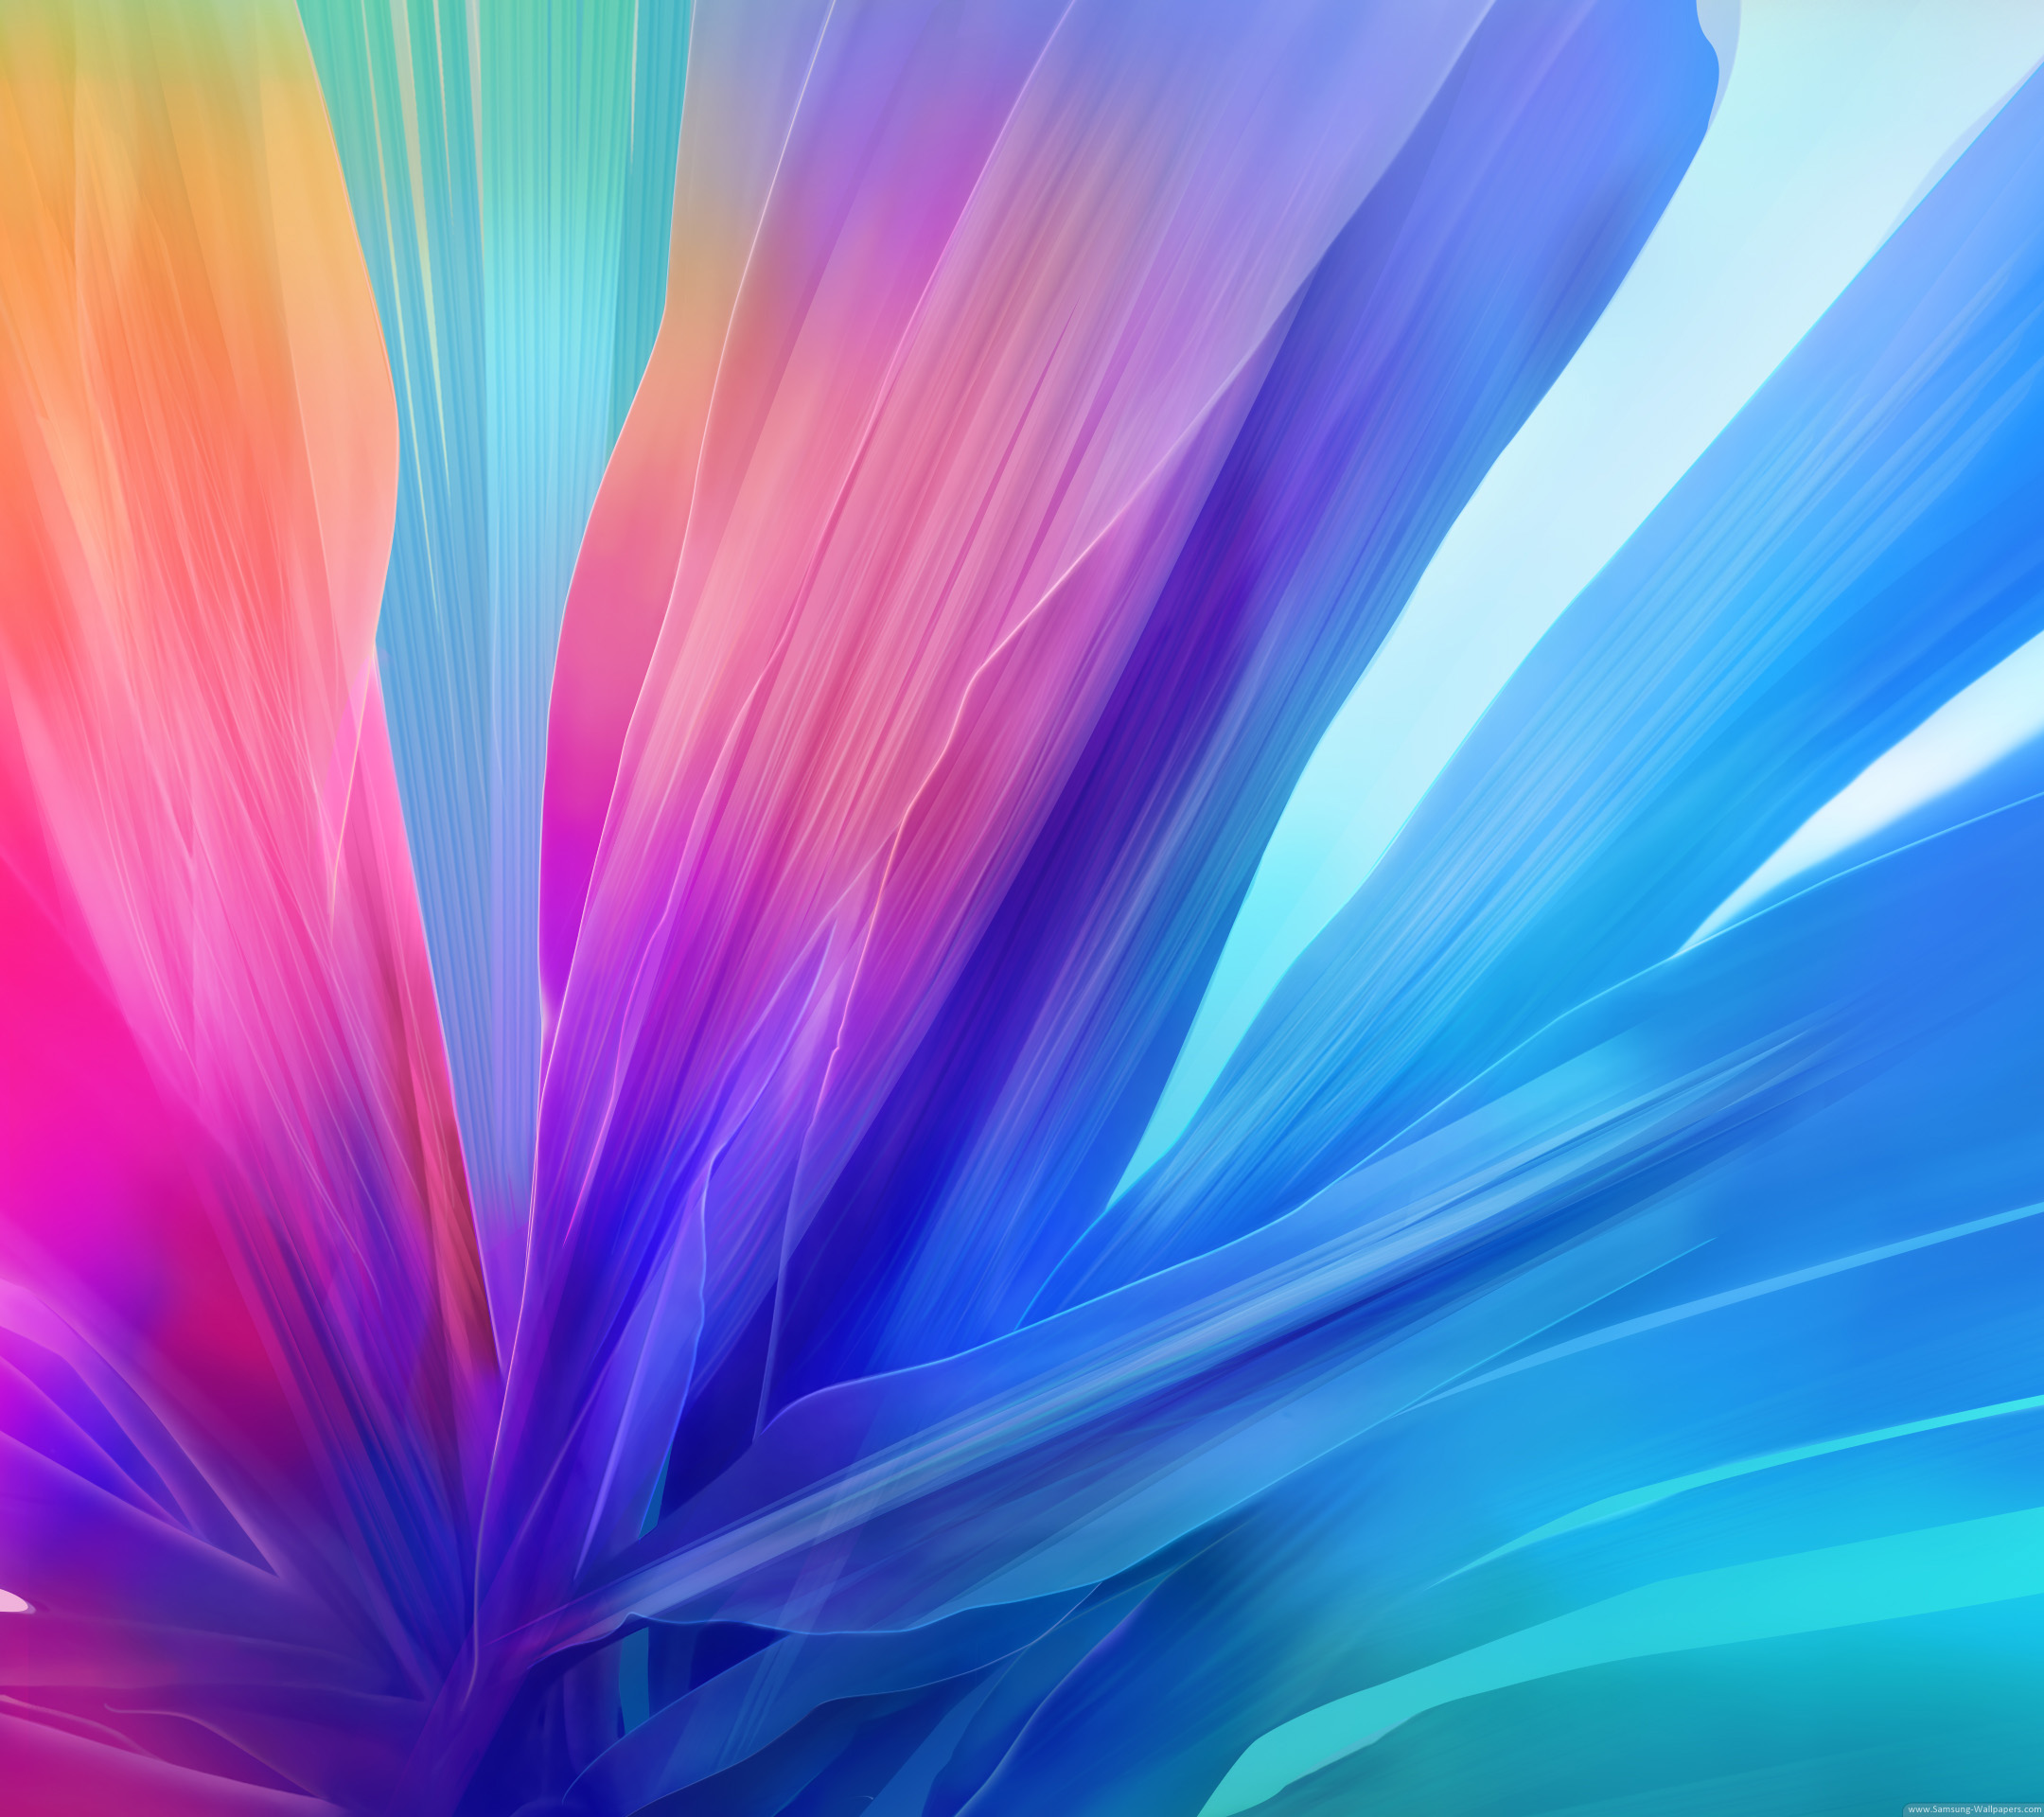 Color Background Stock Samsung Galaxy S5 Wallpaper Samsung Galaxy J7 Prime Phone 1013181 Hd Wallpaper Backgrounds Download